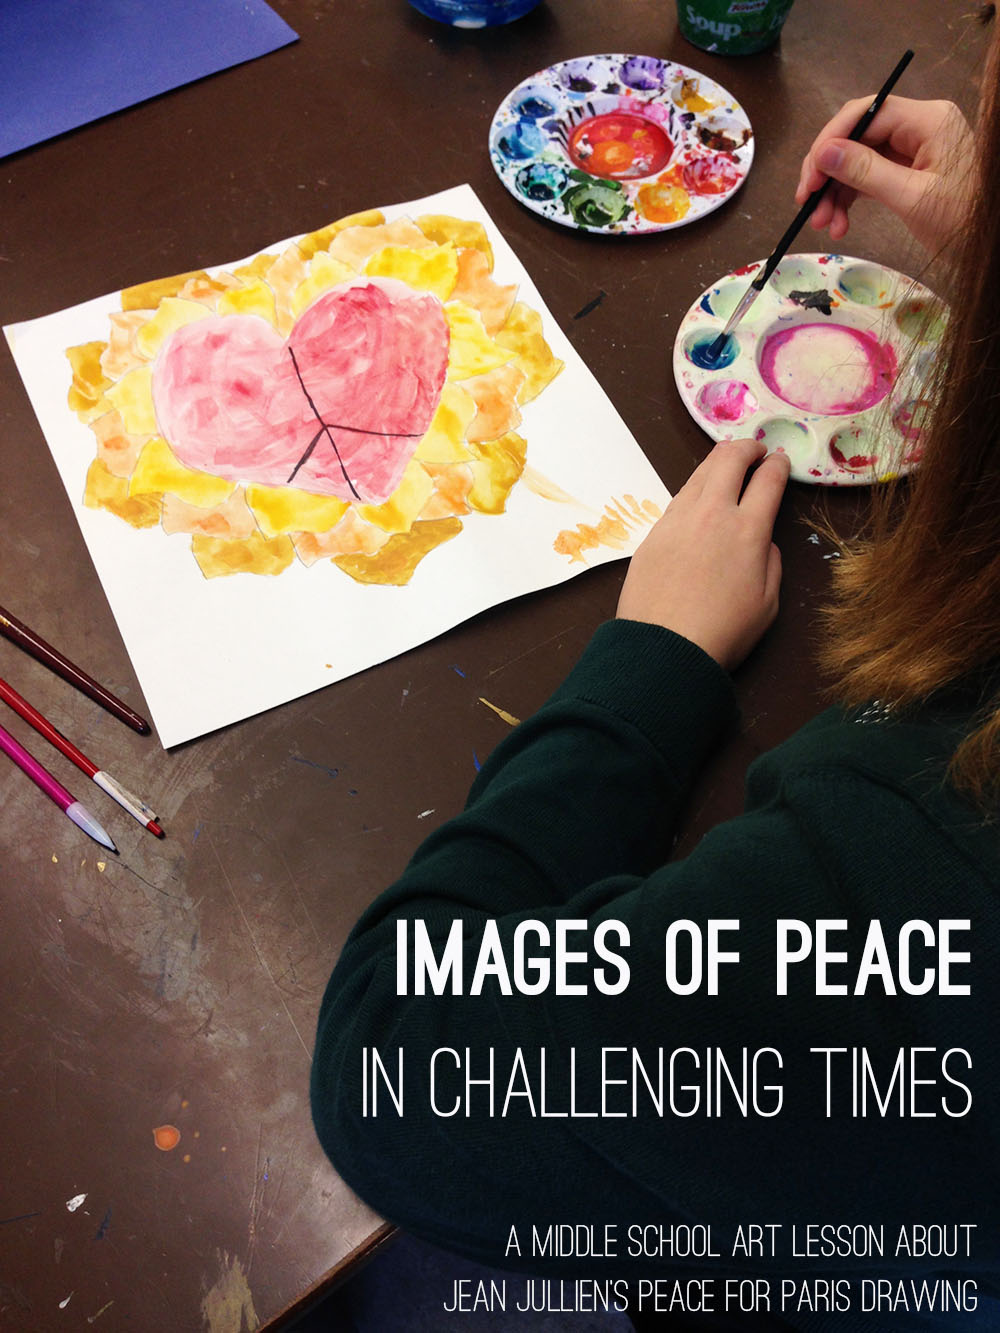 A middle school art lesson about Jean Jullien and his Peace for Paris drawing